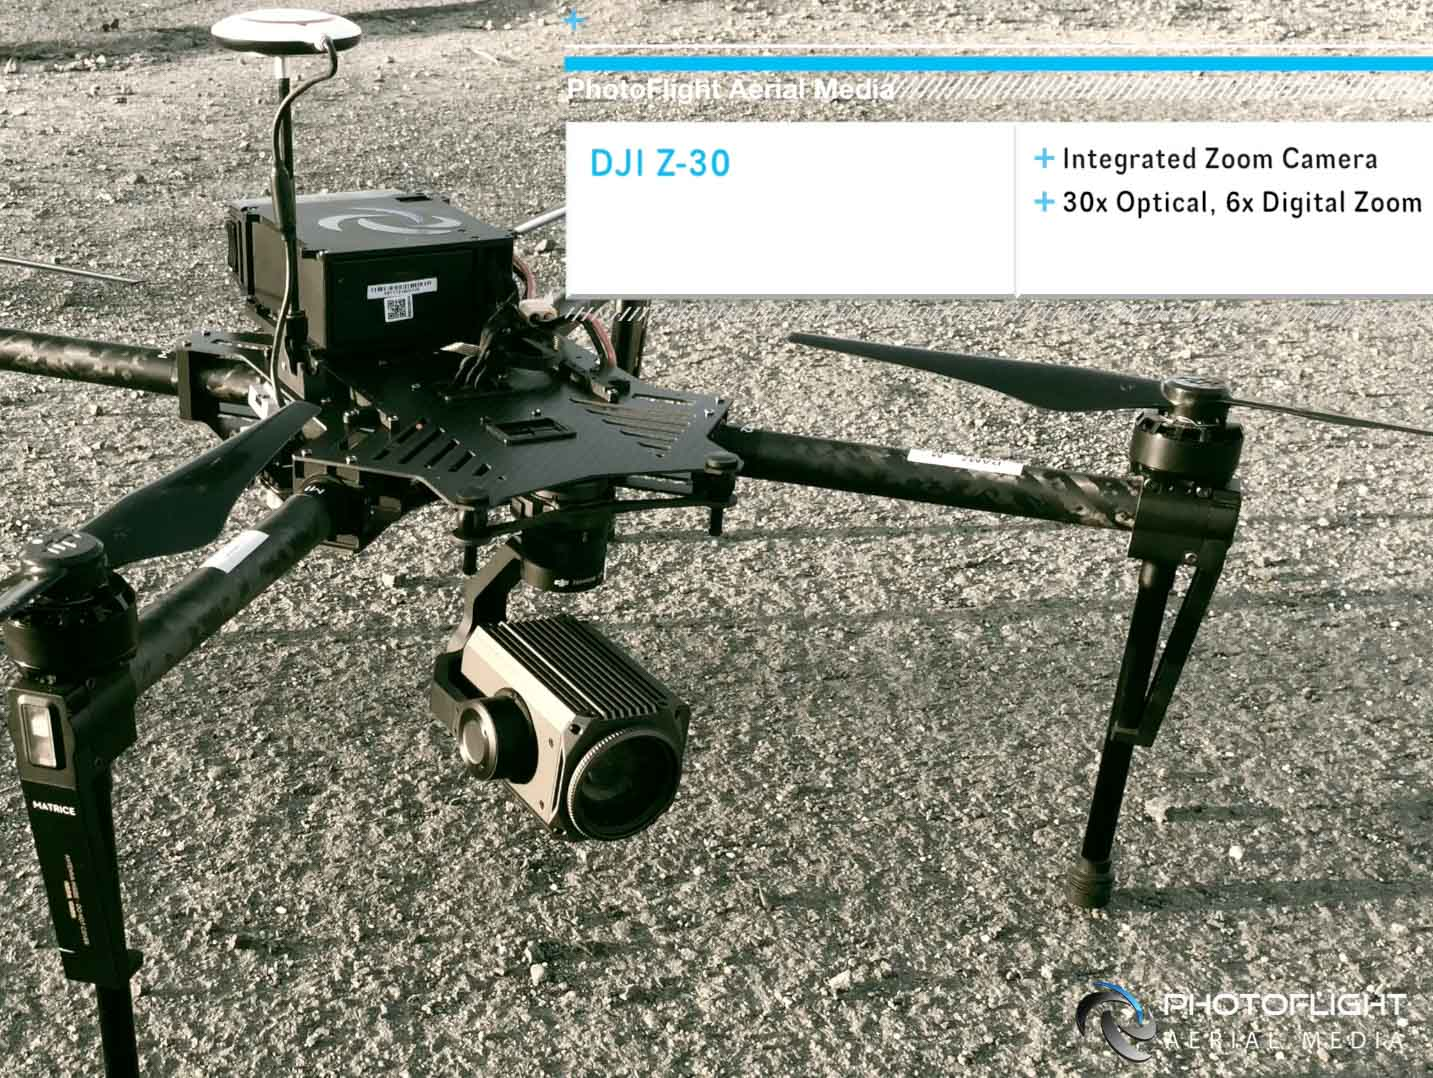 30x Optical Zoom Drone Camera for News and Event Live Broadcast